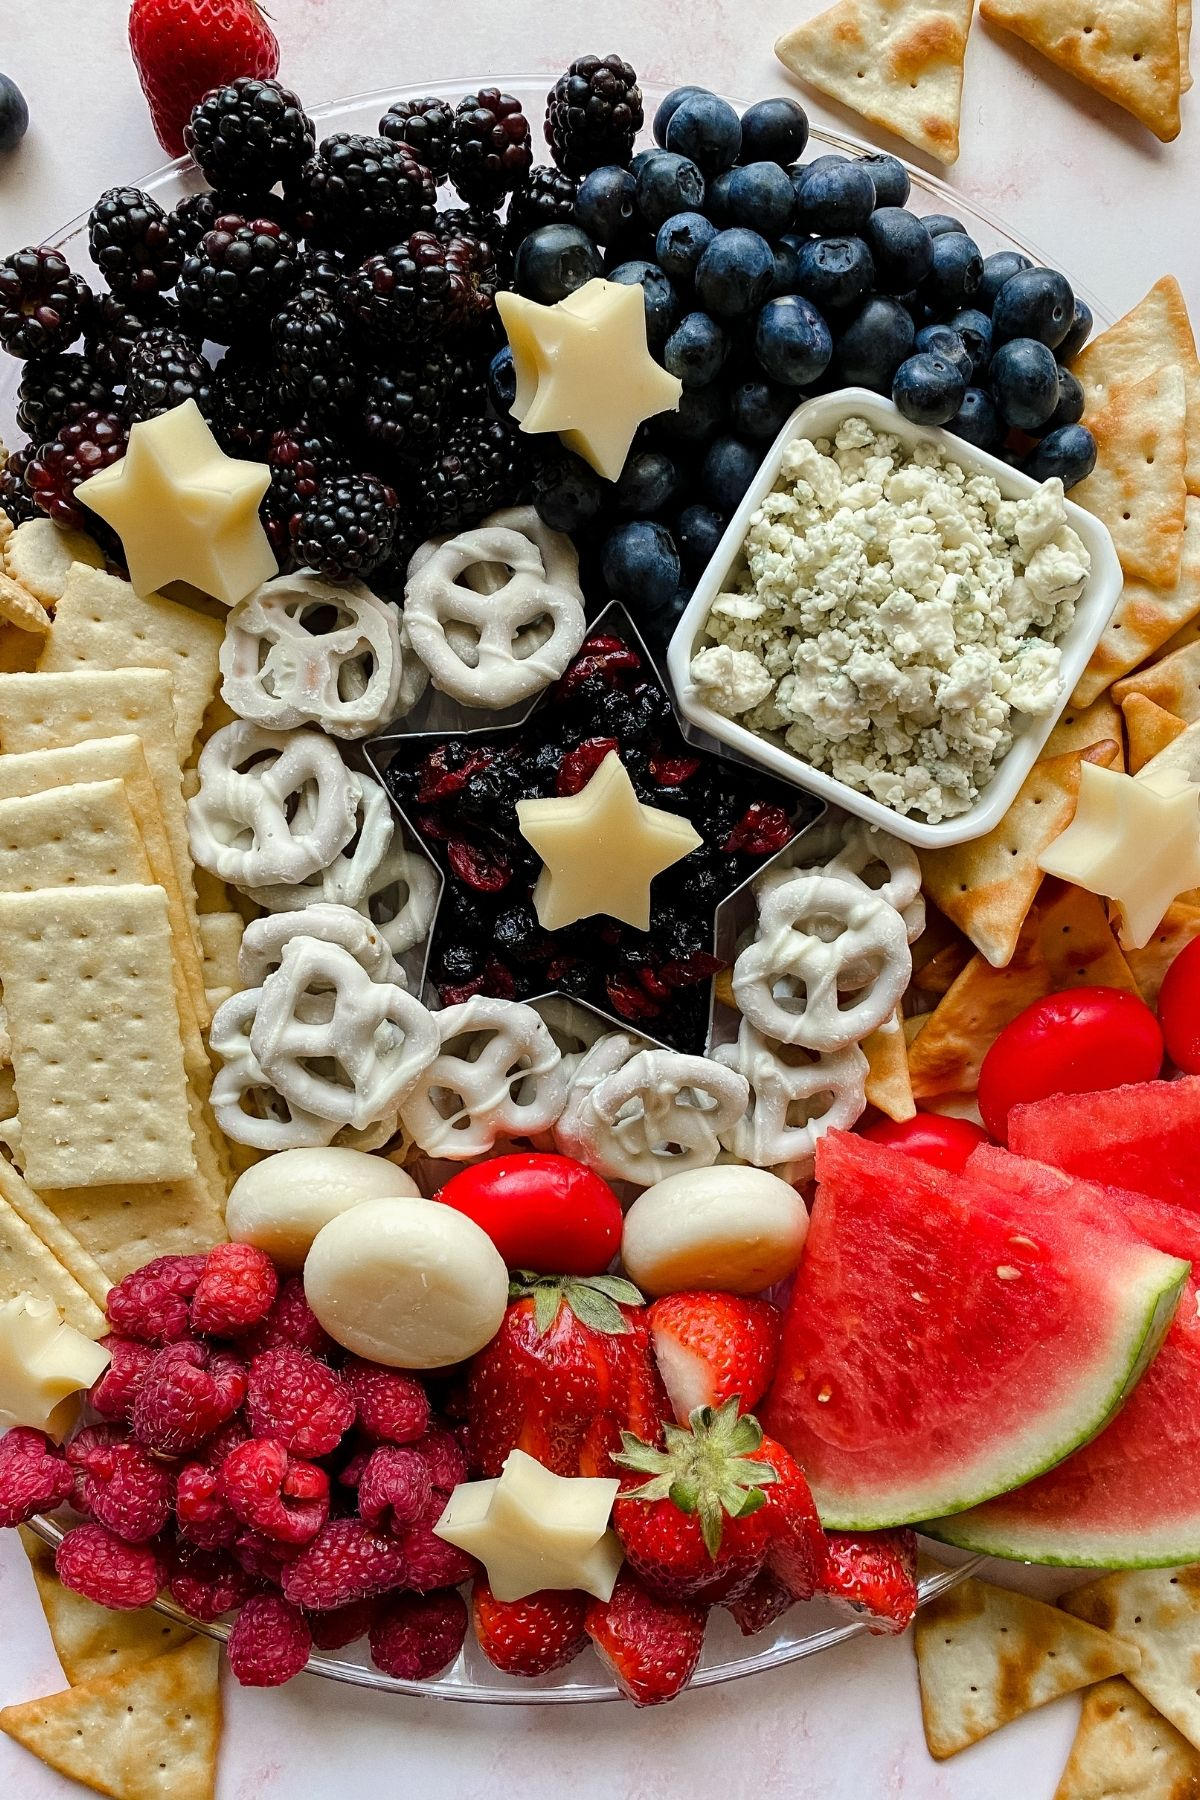 Snack platter with berries crackers and cheese